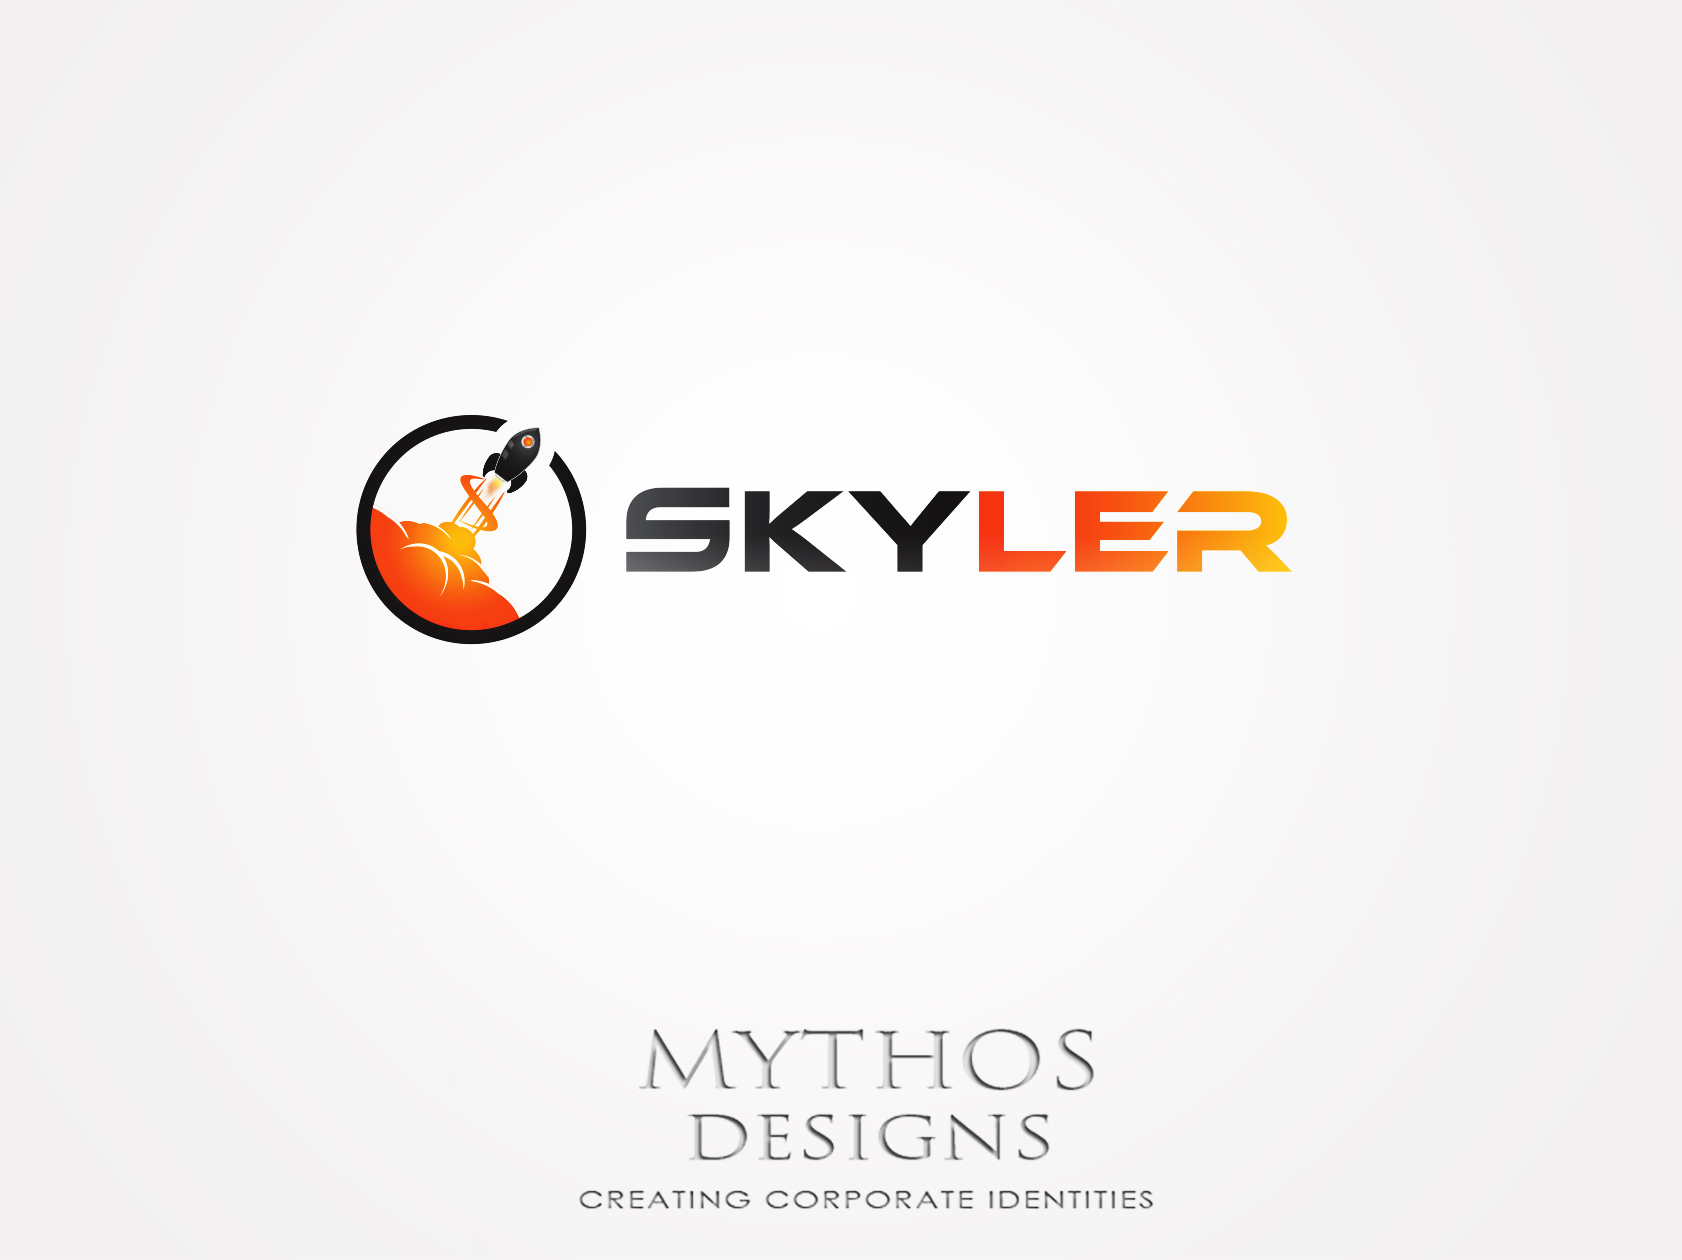 Logo Design by Mythos Designs - Entry No. 78 in the Logo Design Contest Artistic Logo Design for Skyler.Asia.